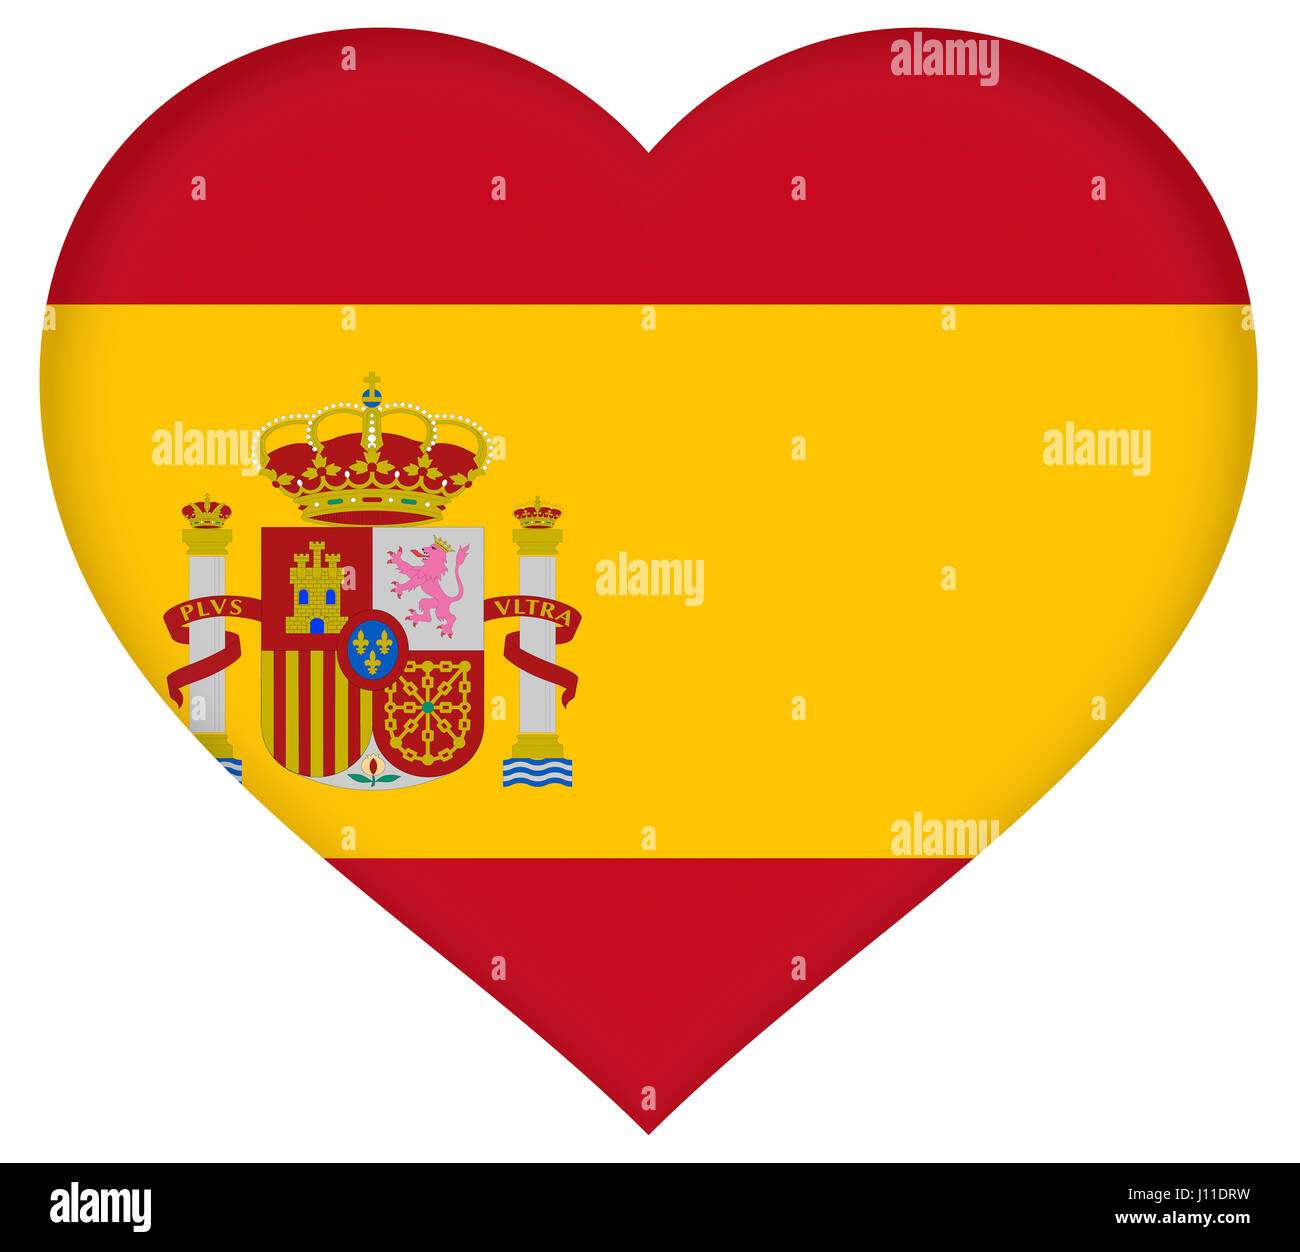 illustration of the national flag of spain with a heart shape